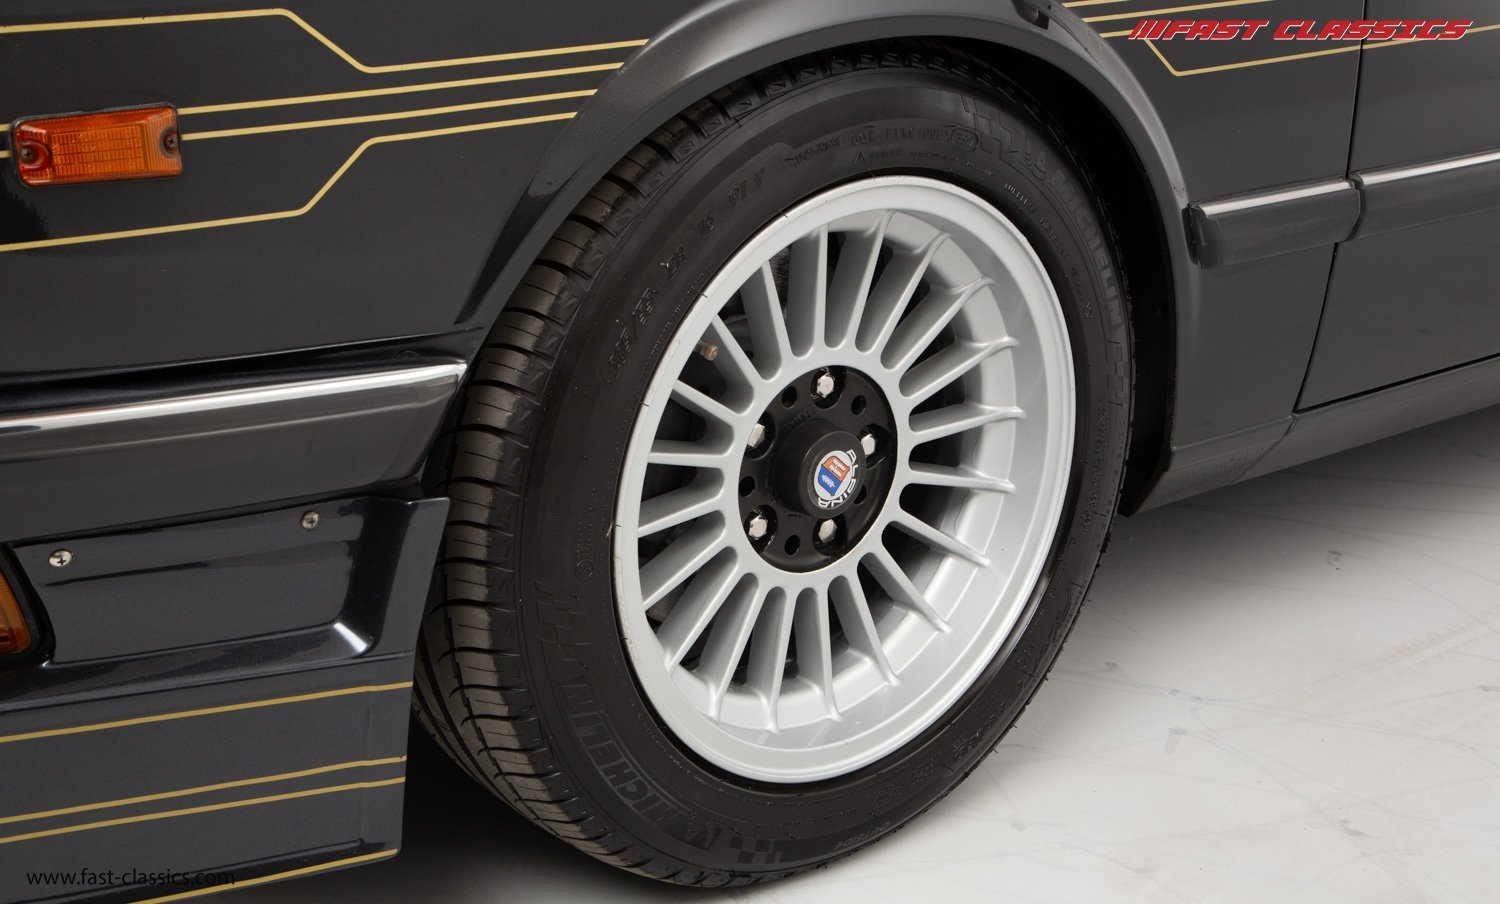 1986 ALPINA B7 TURBO/1 // 1 OF 42 HIGH POWER CATALYST CARS  For Sale (picture 21 of 24)